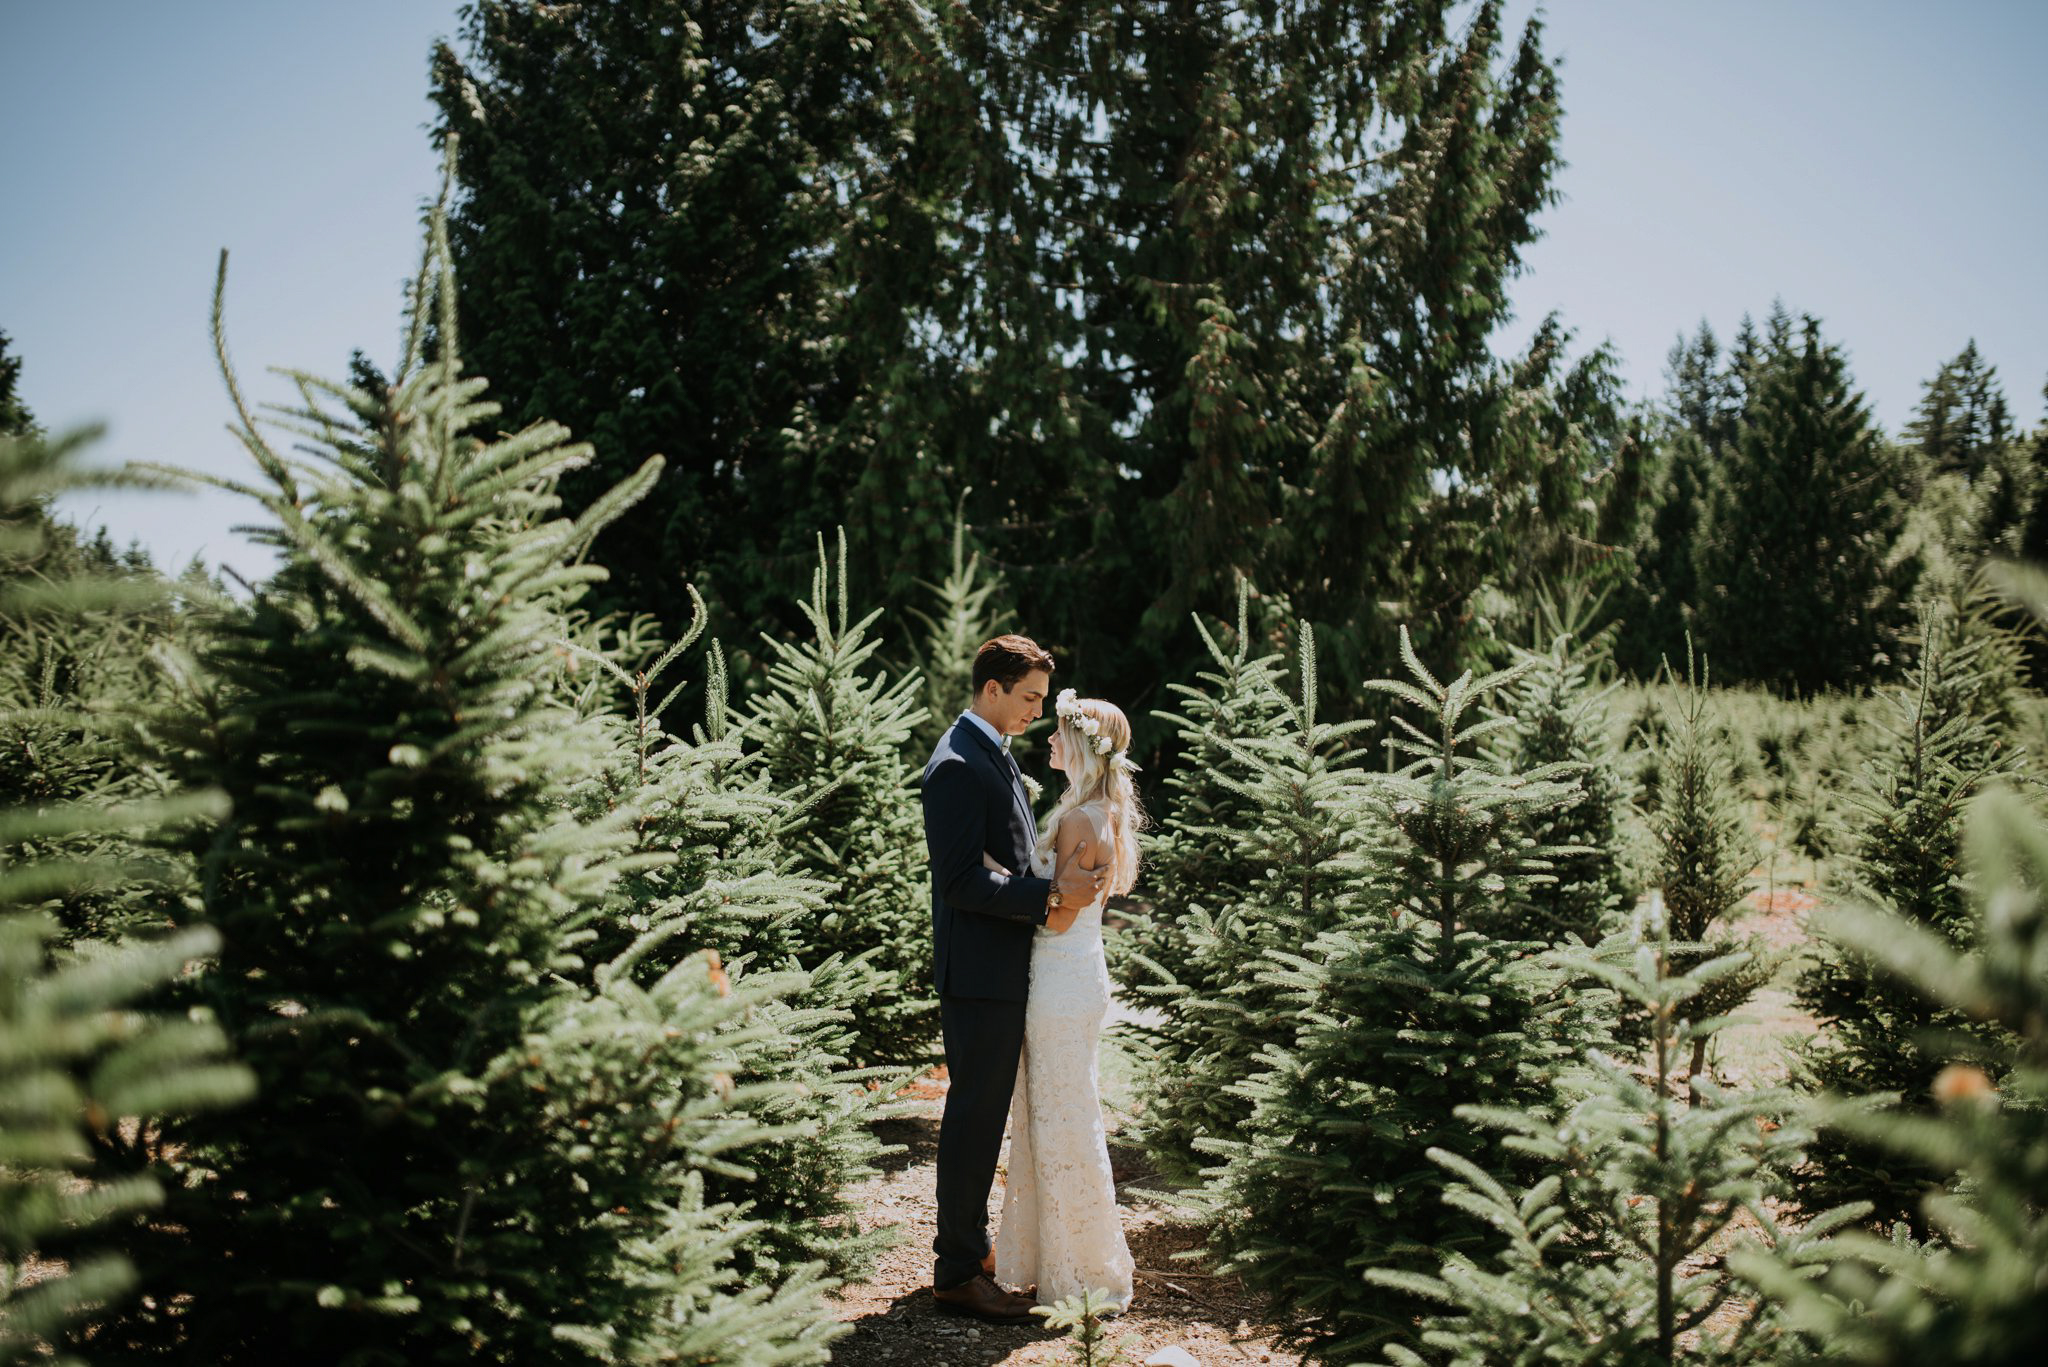 trinity-tree-farm-issaquah-washington-wedding-seattle-lifestyle-photographer-caitlyn-nikula-photography-34.jpg